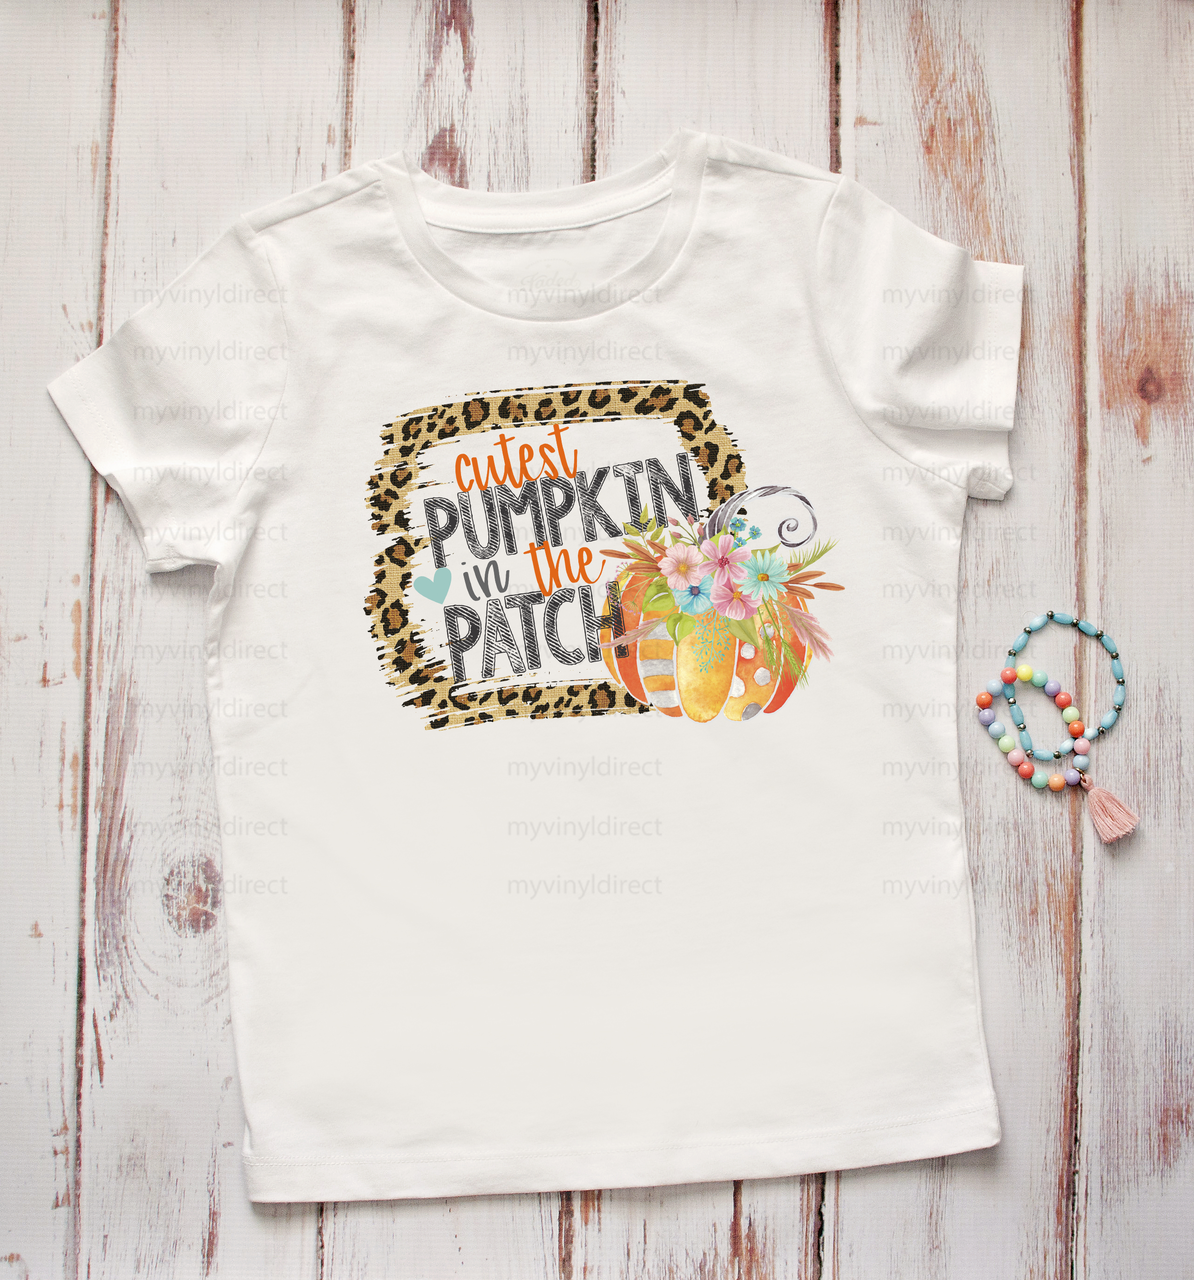 Baby Design What Up Succa! Sublimation Print Ready to press